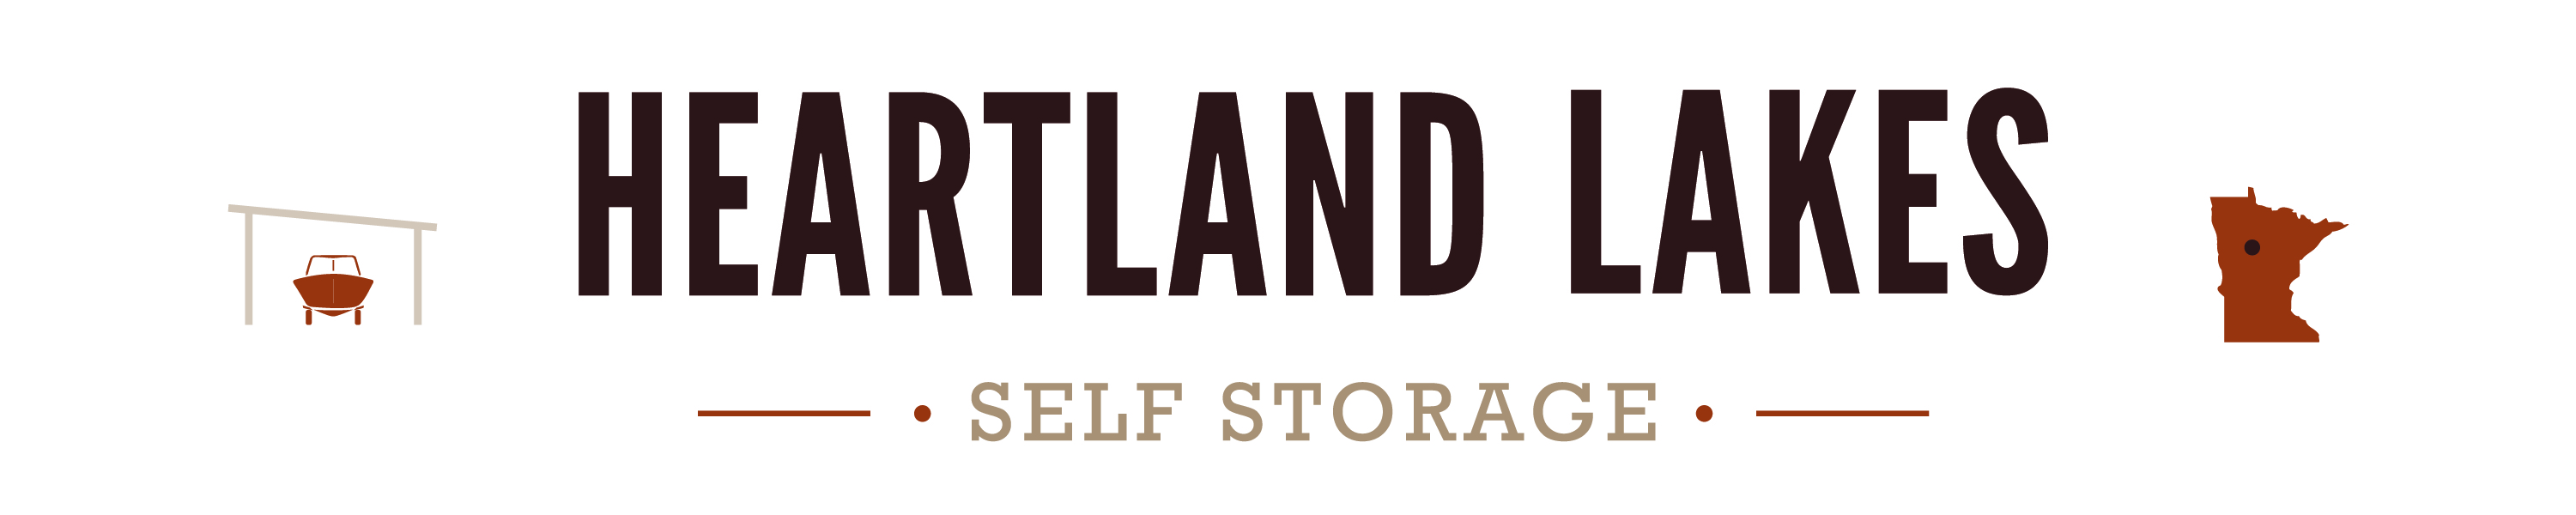 Heartland Lakes Self Storage